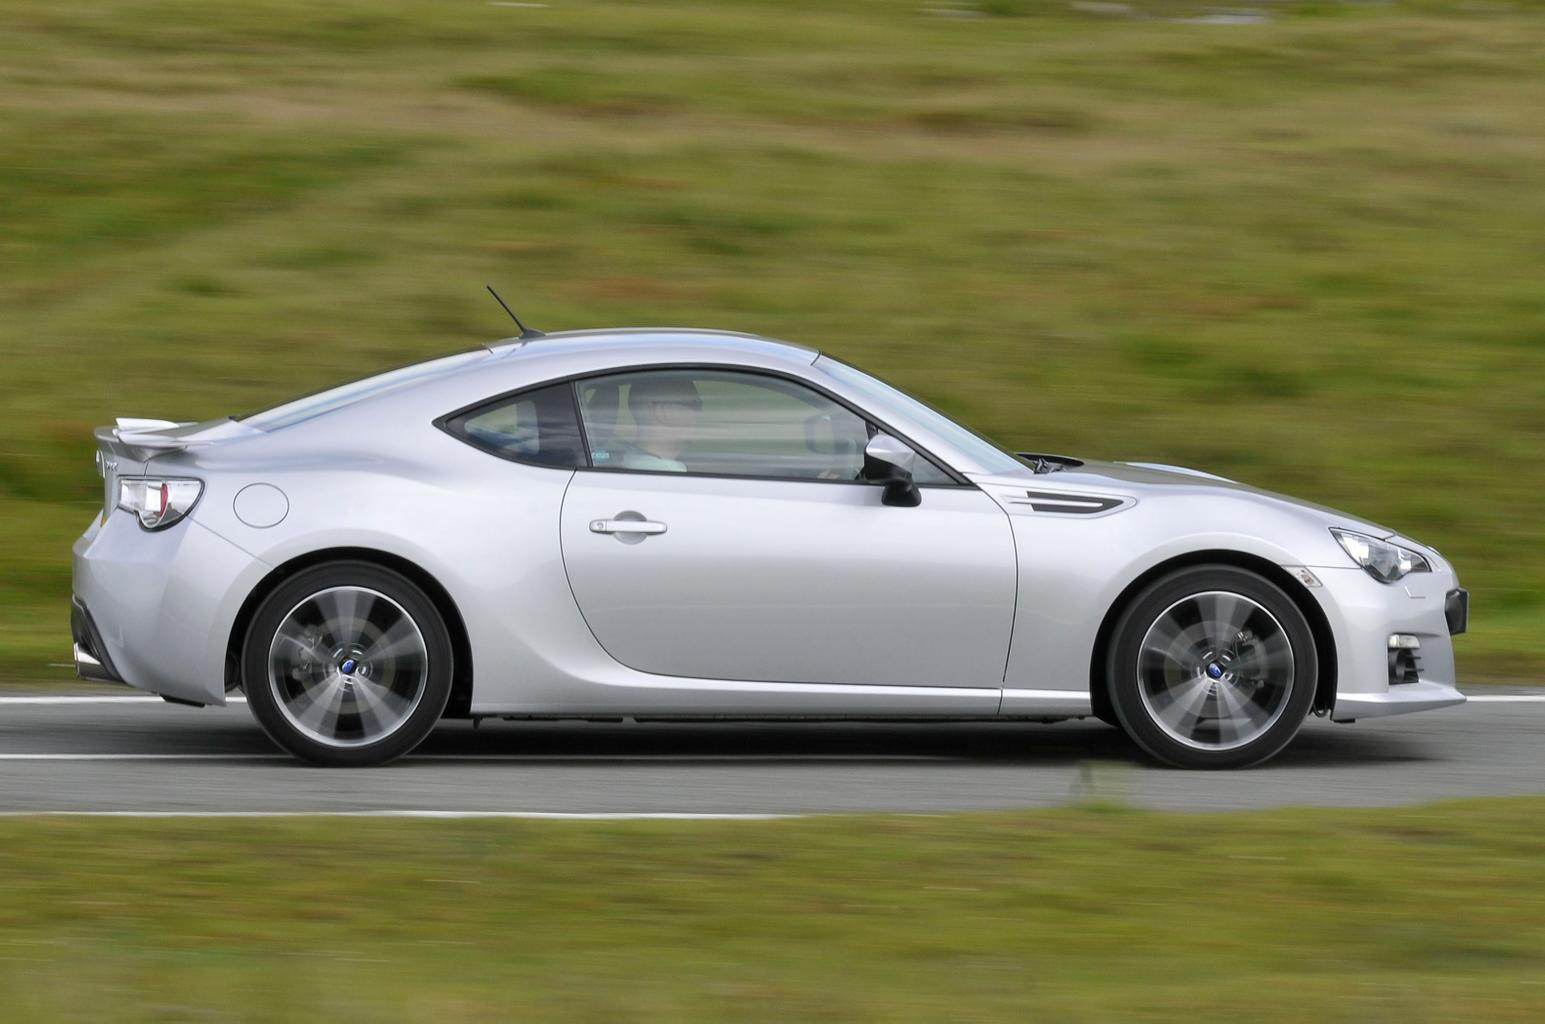 Used test – sporty coupes: Audi TT vs Renault Sport Megane vs Subaru BRZ vs Toyota GT86